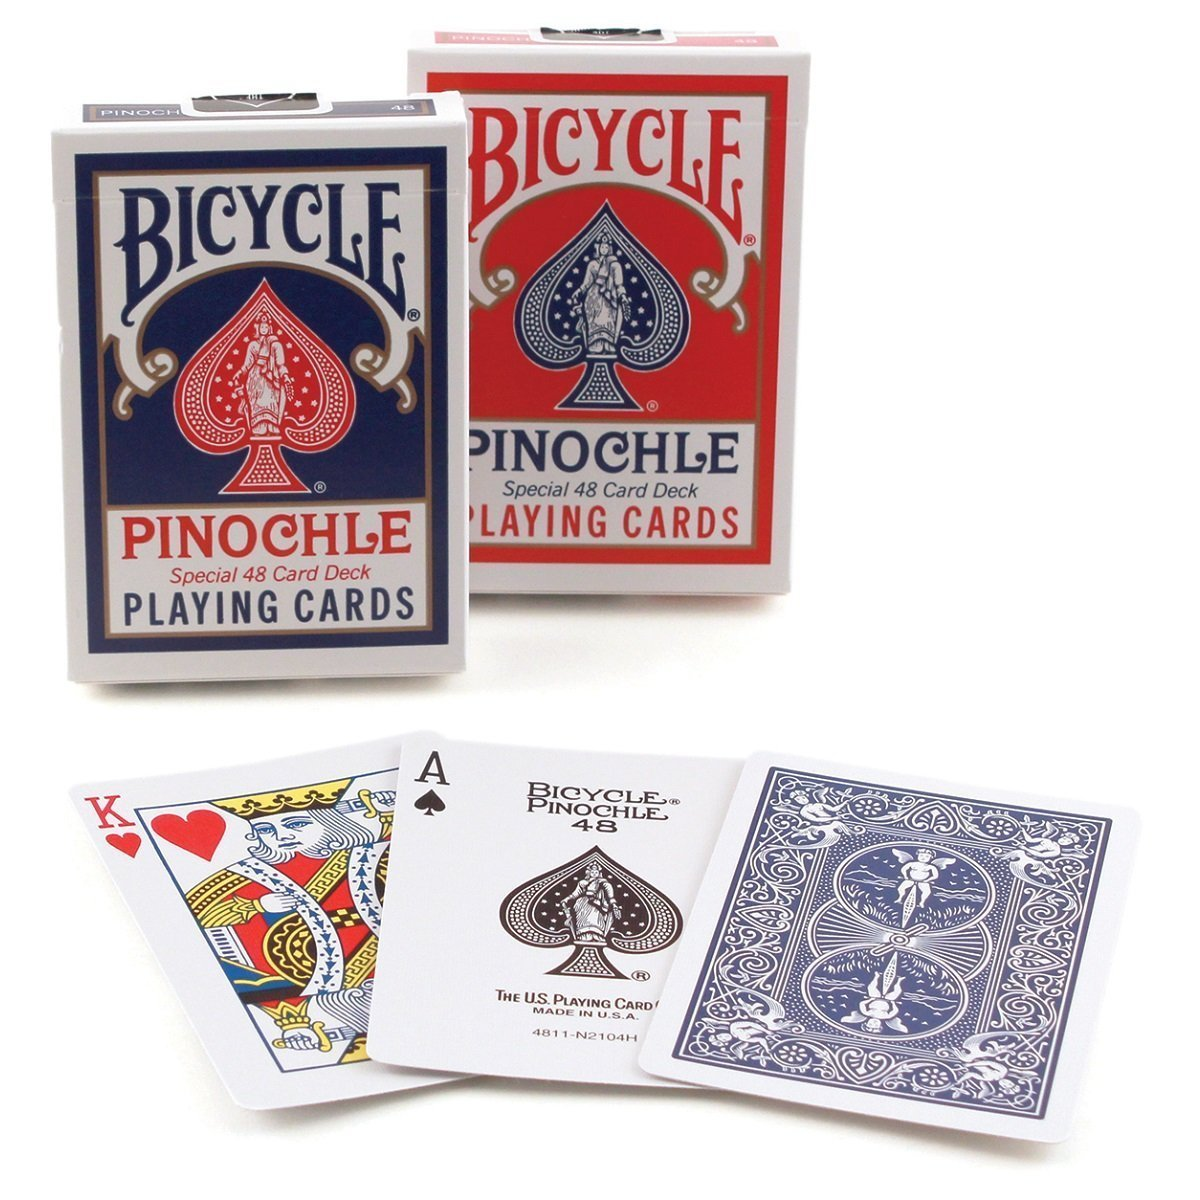 Pack of 2 United States Playing Card Company USPCP-01 Bicycle Pinochle Playing Cards